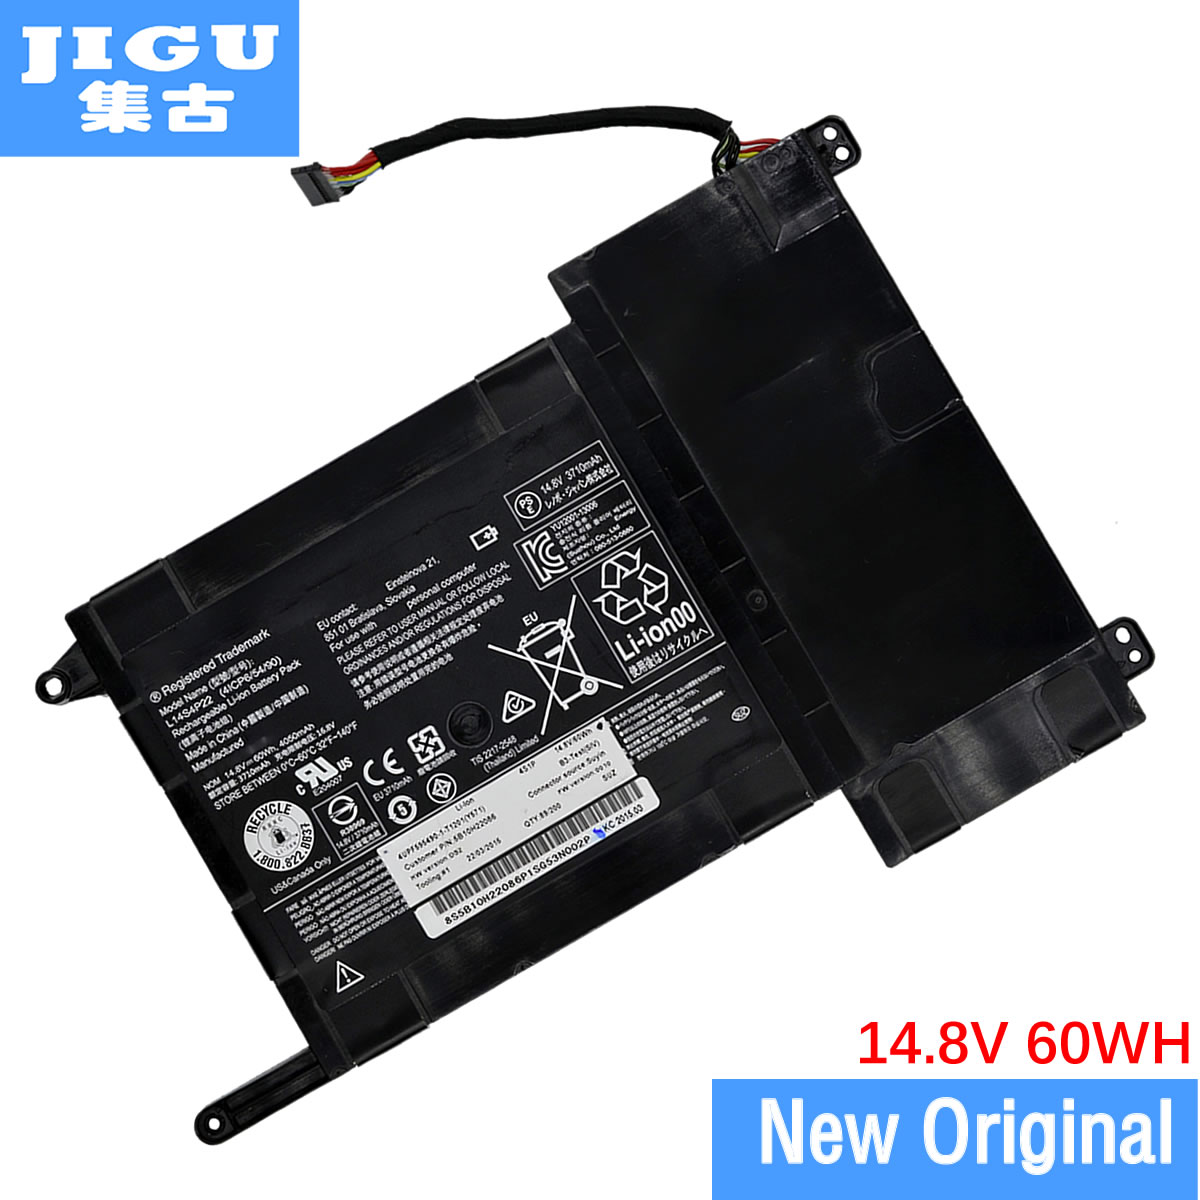 JIGU laptop battery L14M4P23 FOR LENOVO IdeaPad Y700 Y700 Y700-15ISK-ISE Y700-17ISK Y700-ISE купить